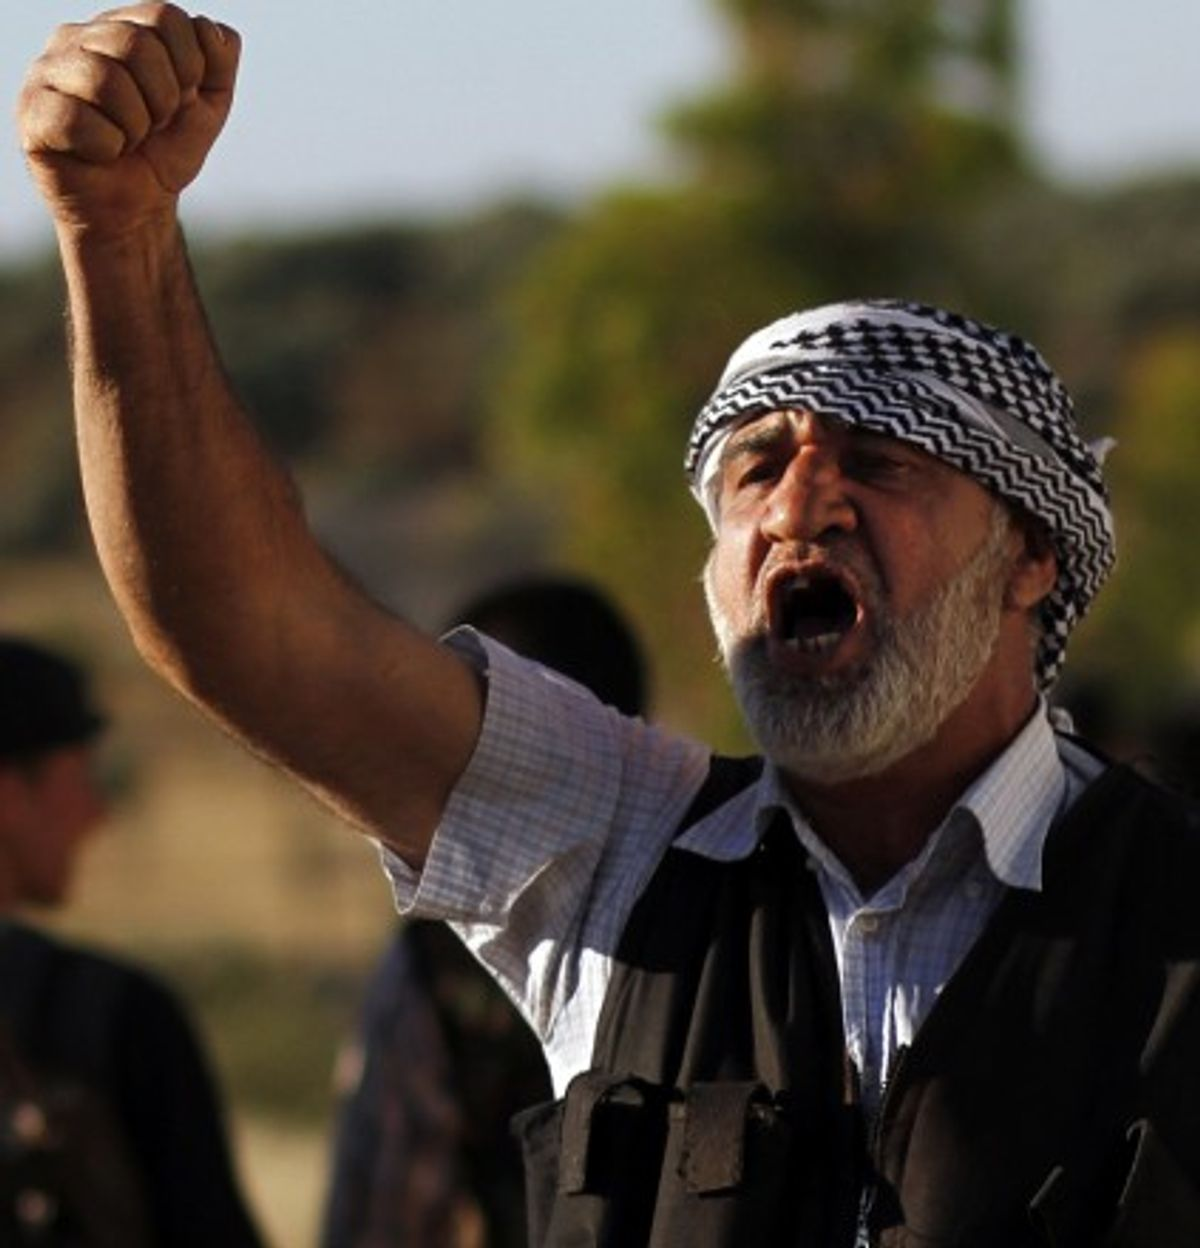 A Free Syrian Army officer chants slogans during a training session on the outskirts of Idlib, Syria.    (Associated Press)